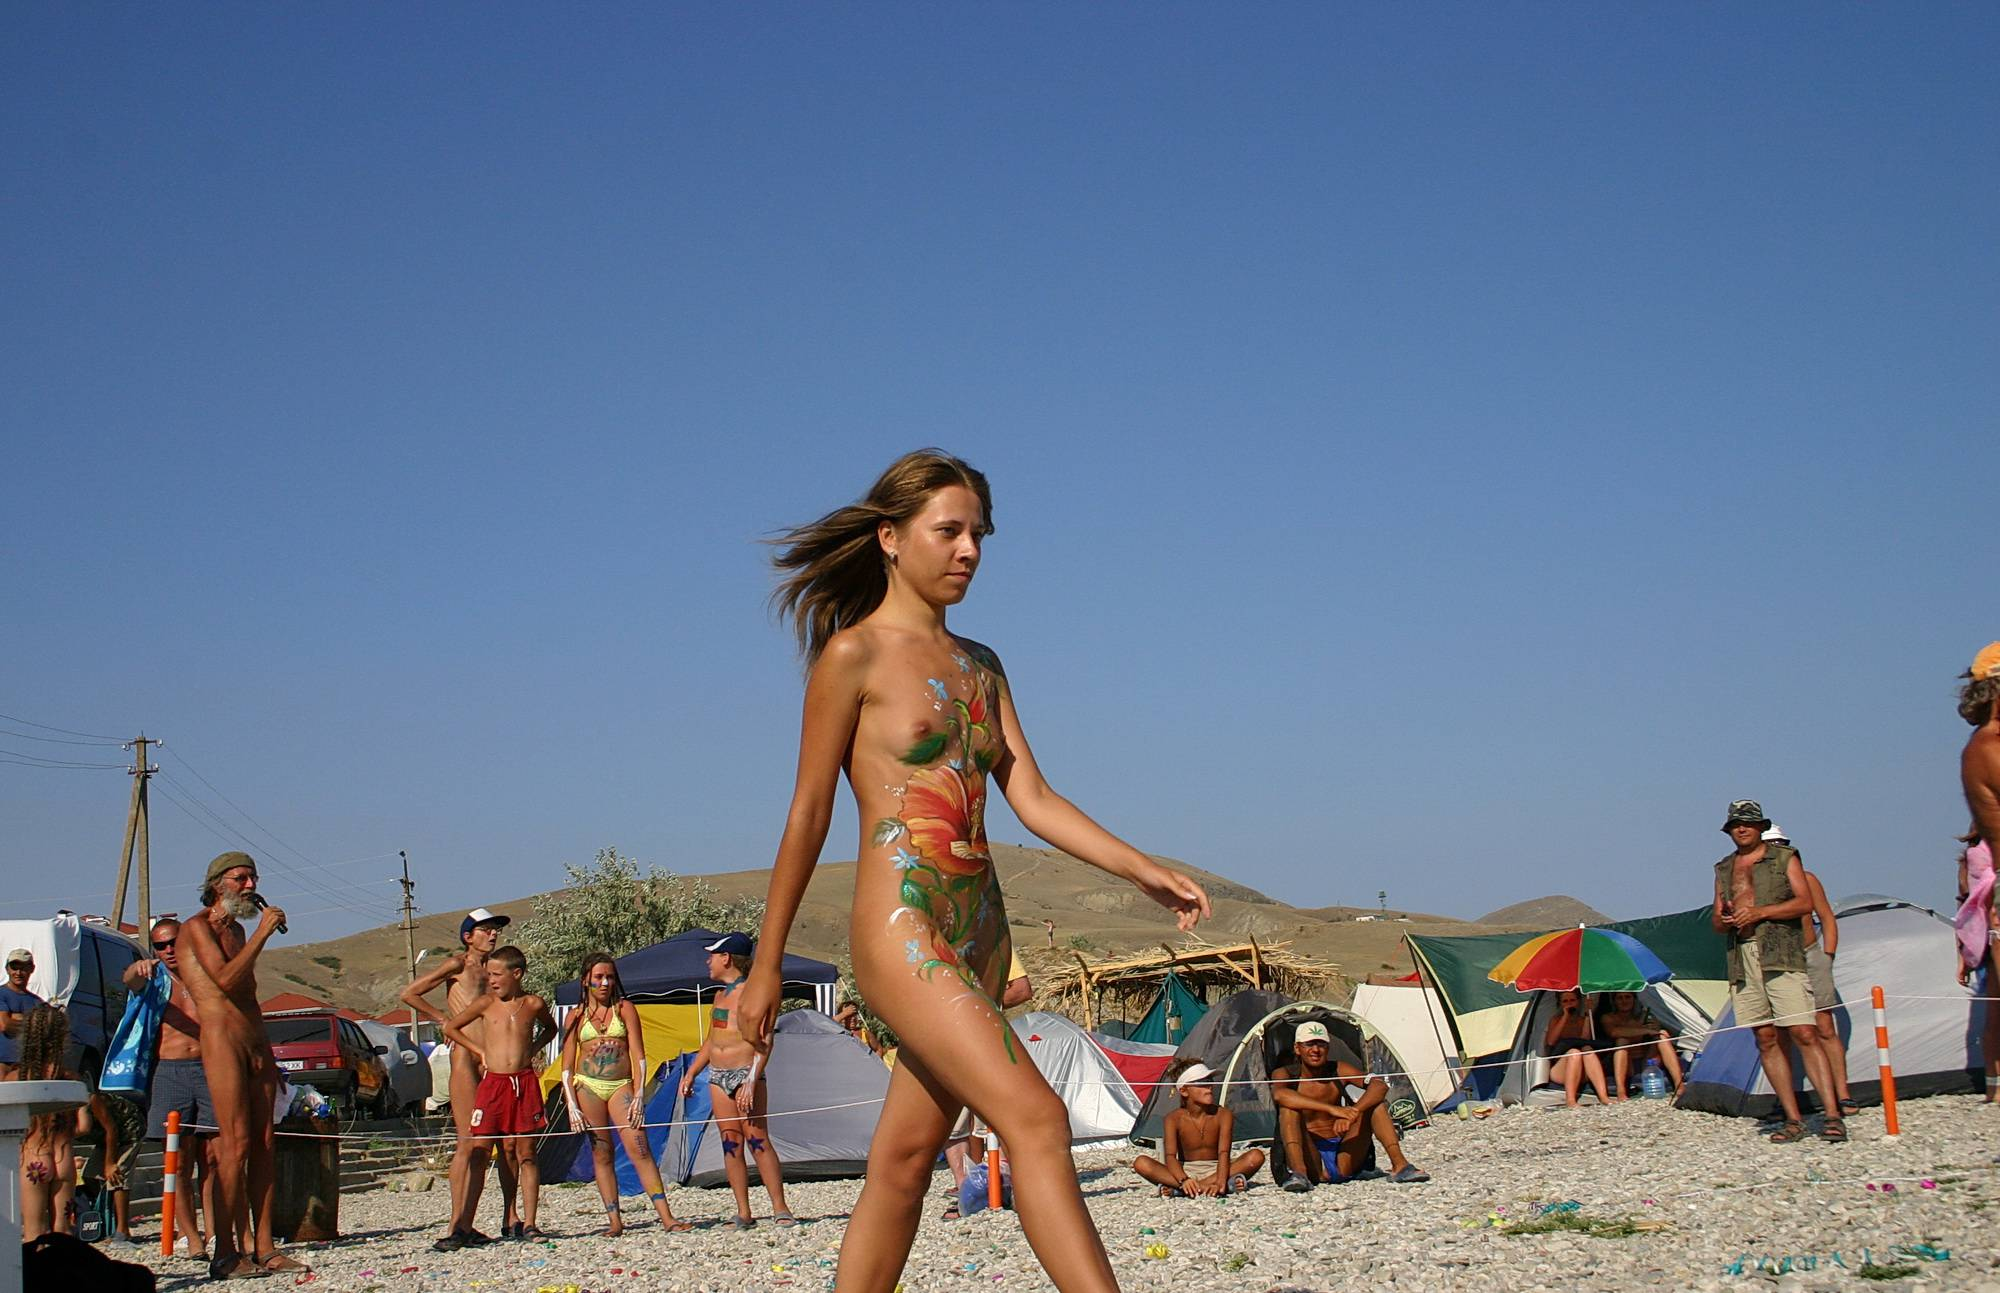 Nudist Gallery Beach Time Talent Show - 2